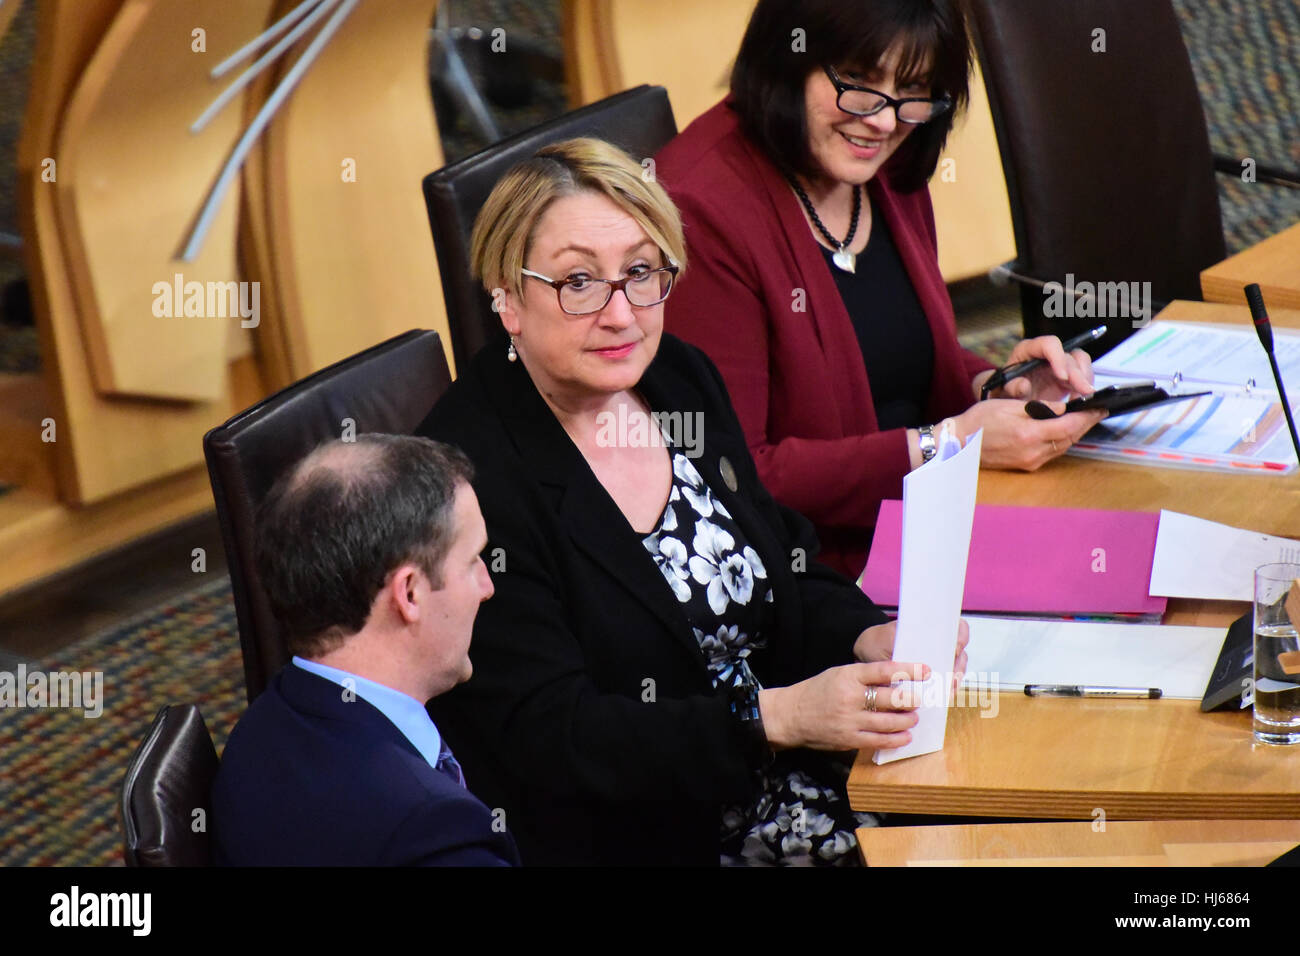 Edinburgh, Scotland, UK. 26th January, 2017. Annabelle Ewing, Minister for Community Safety and Legal Affairs, prepares - Stock Image